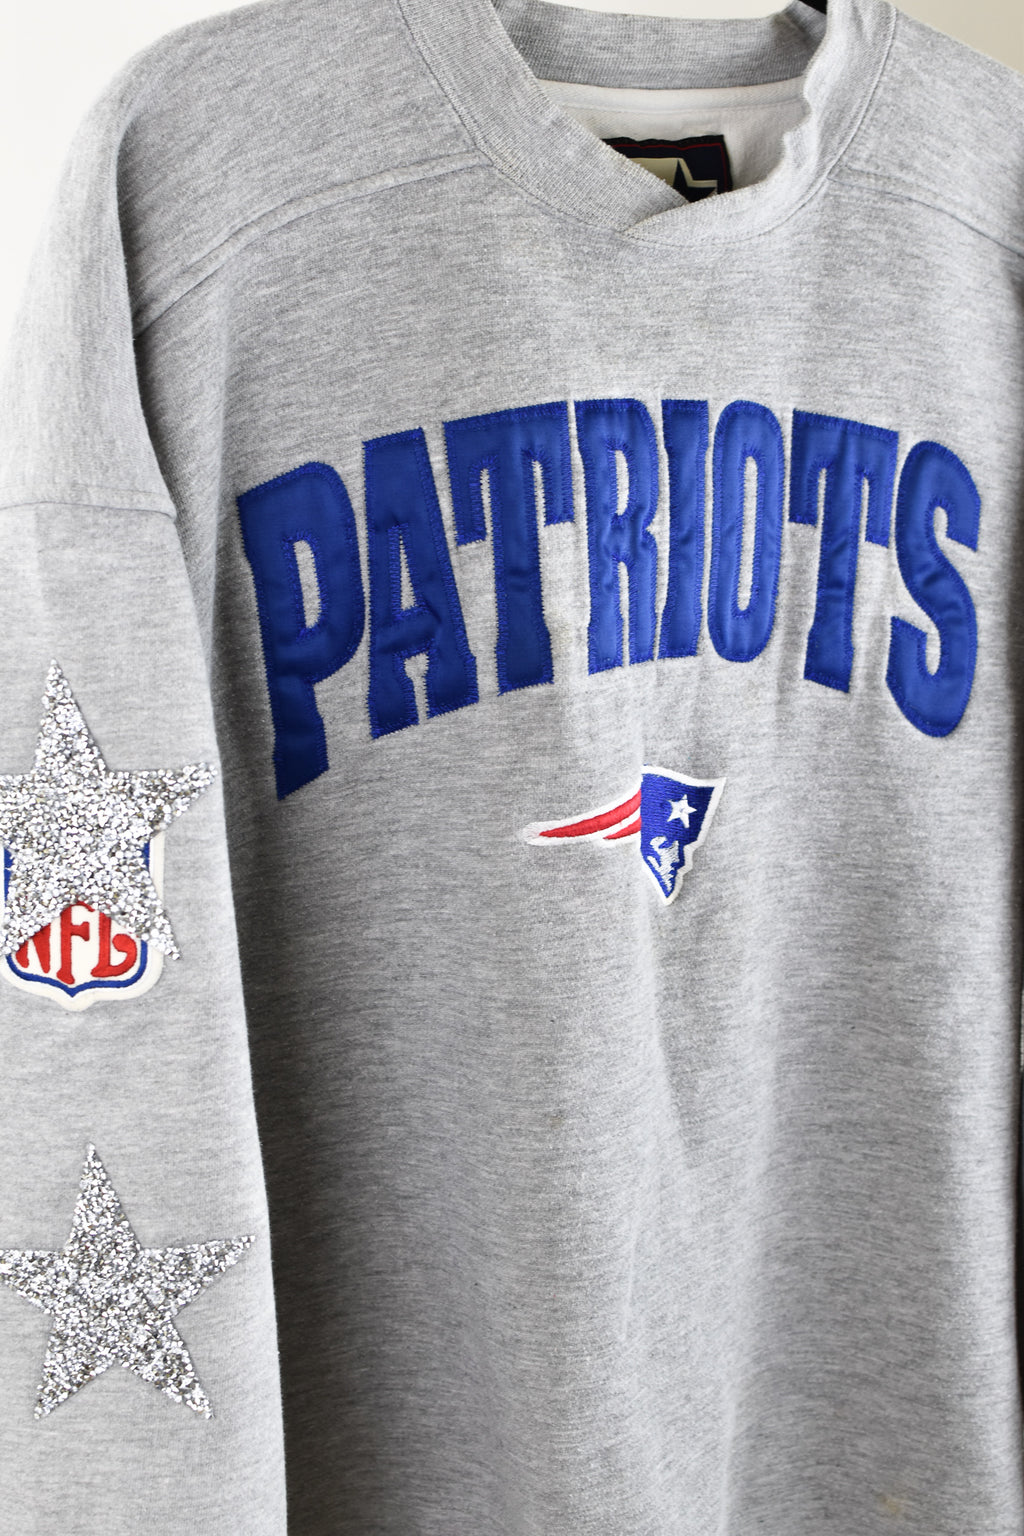 Upcycled VINTAGE New England Patriots Star Rhinestone Sweatshirt